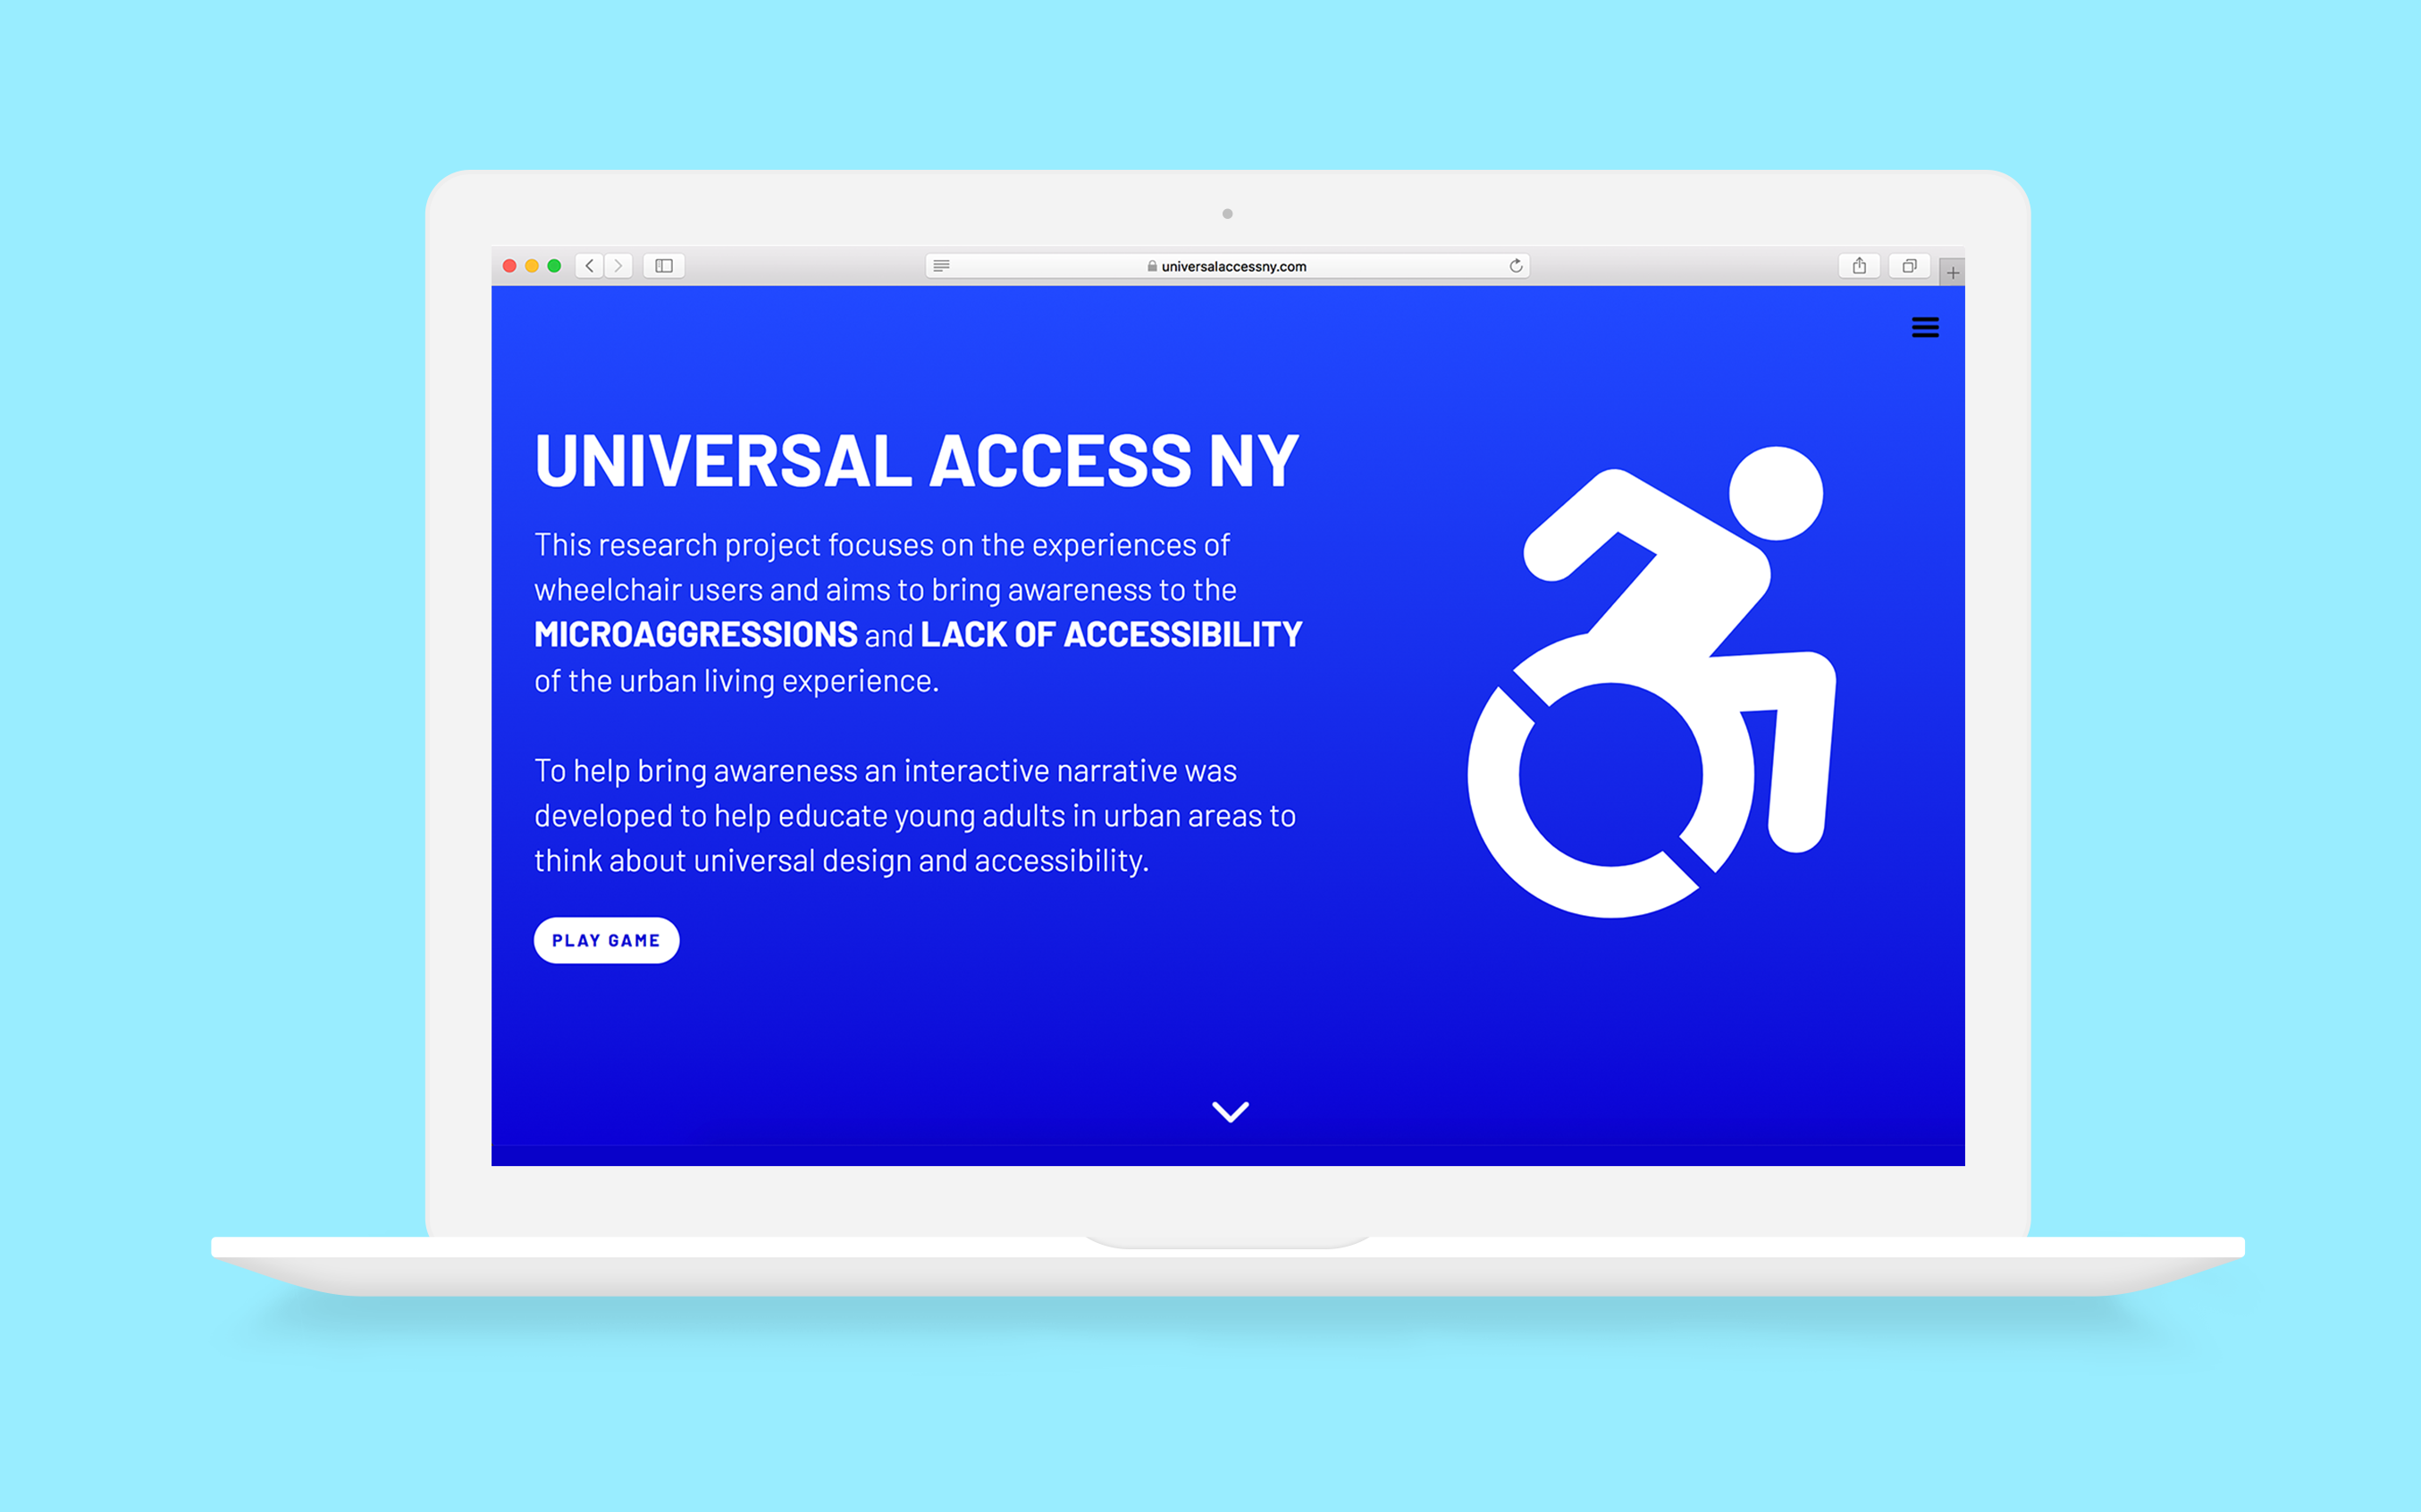 Floating laptop on a blue background displaying the homepage of the Universal Access NY website.